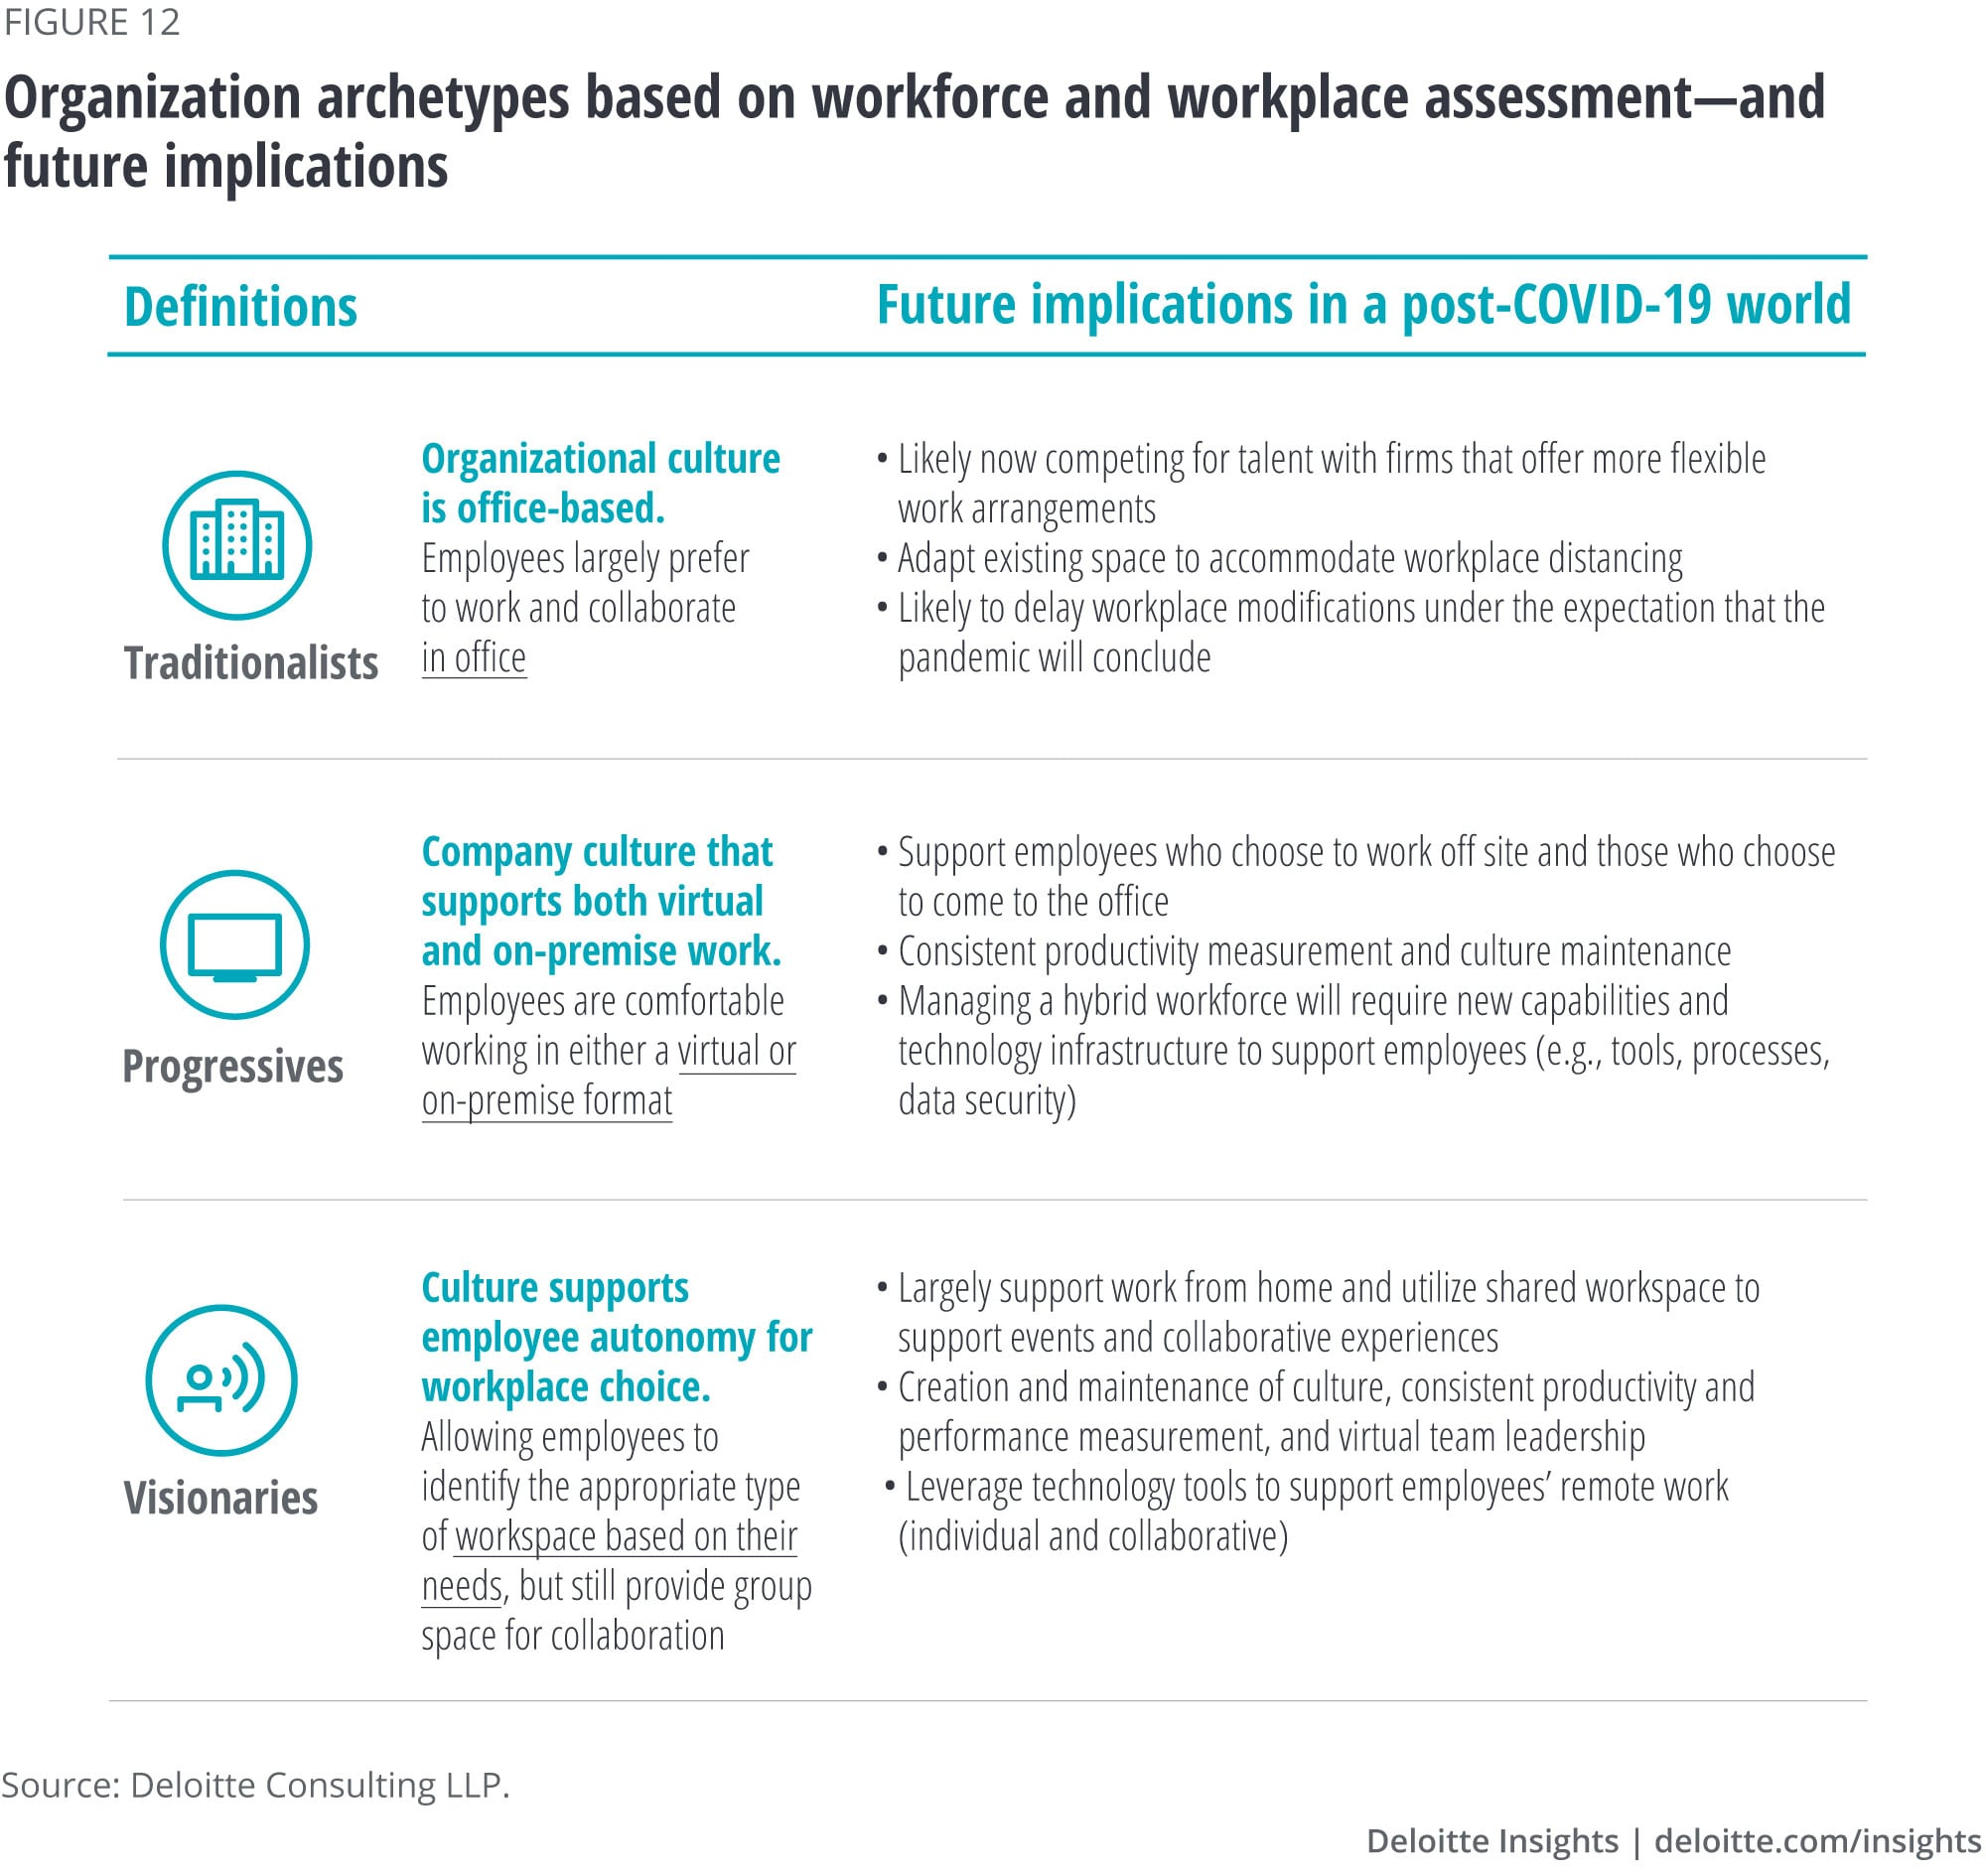 Organization archetypes based on workforce and workplace assessment, and future implications